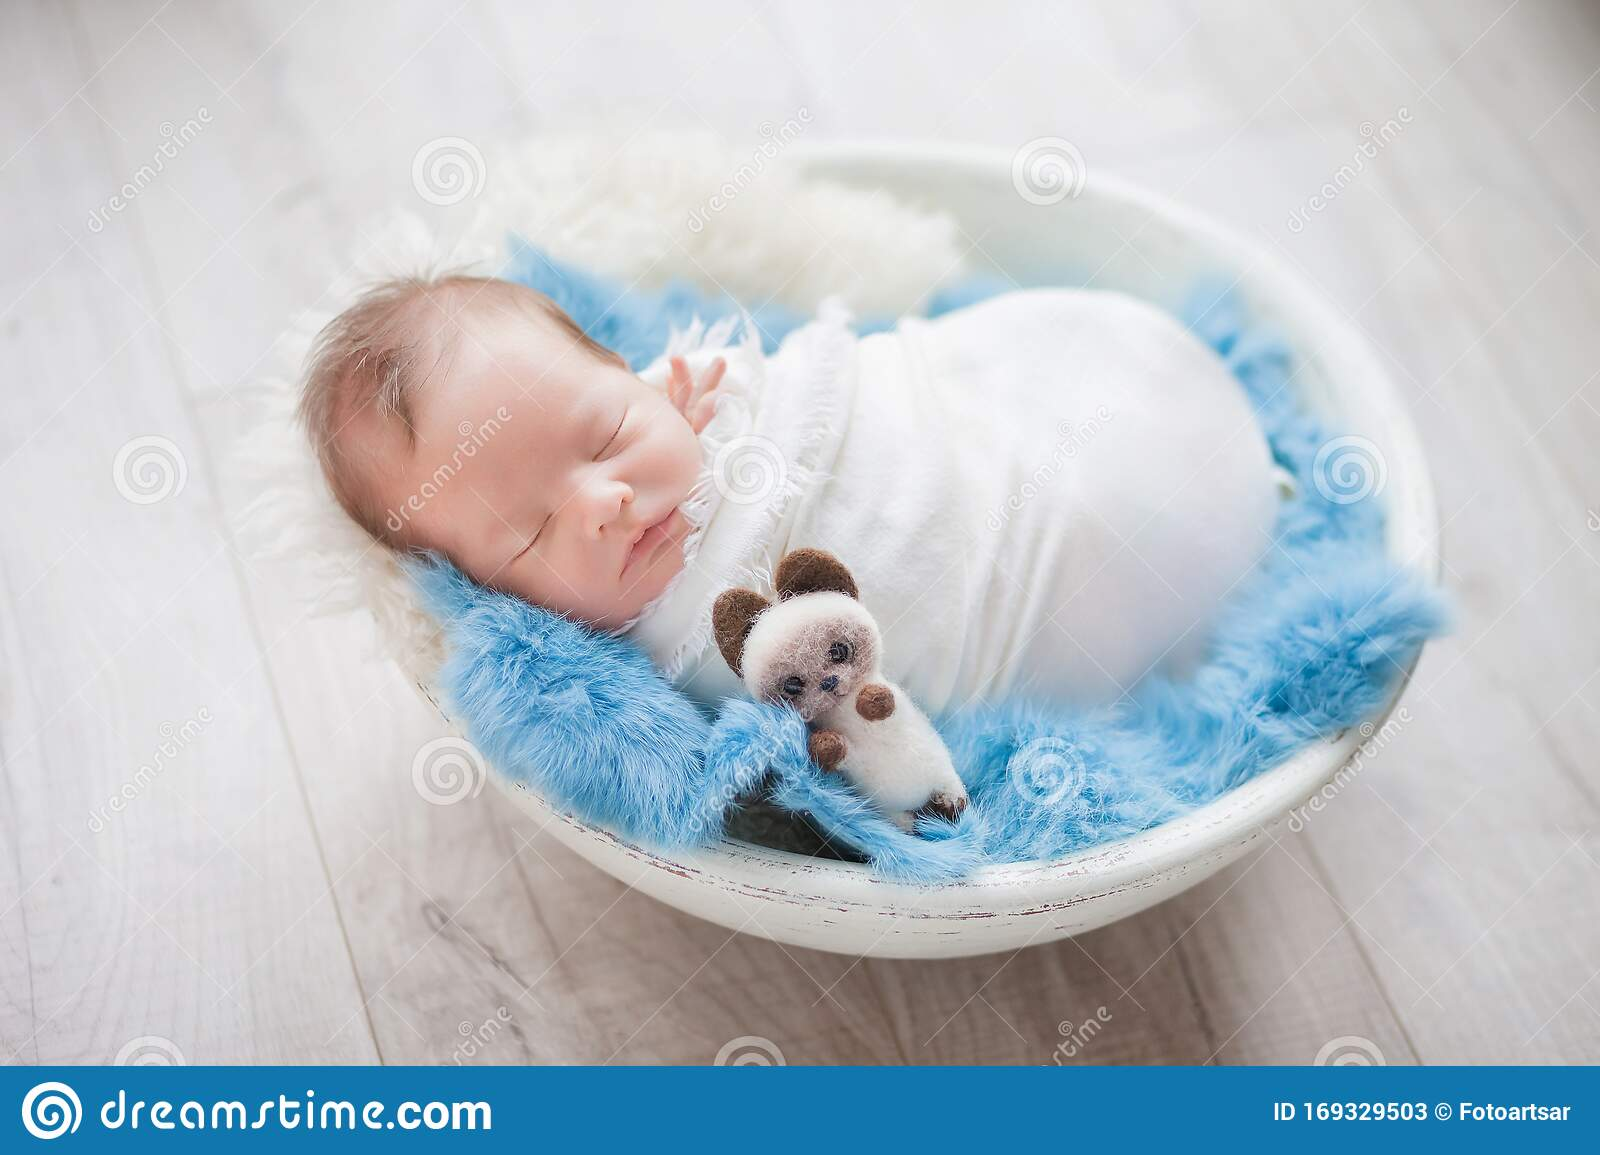 Newborn Baby Boy In A Cocoon In A White Bowl On A Blue Rug Stock Image Image Of Caucasian Little 169329503